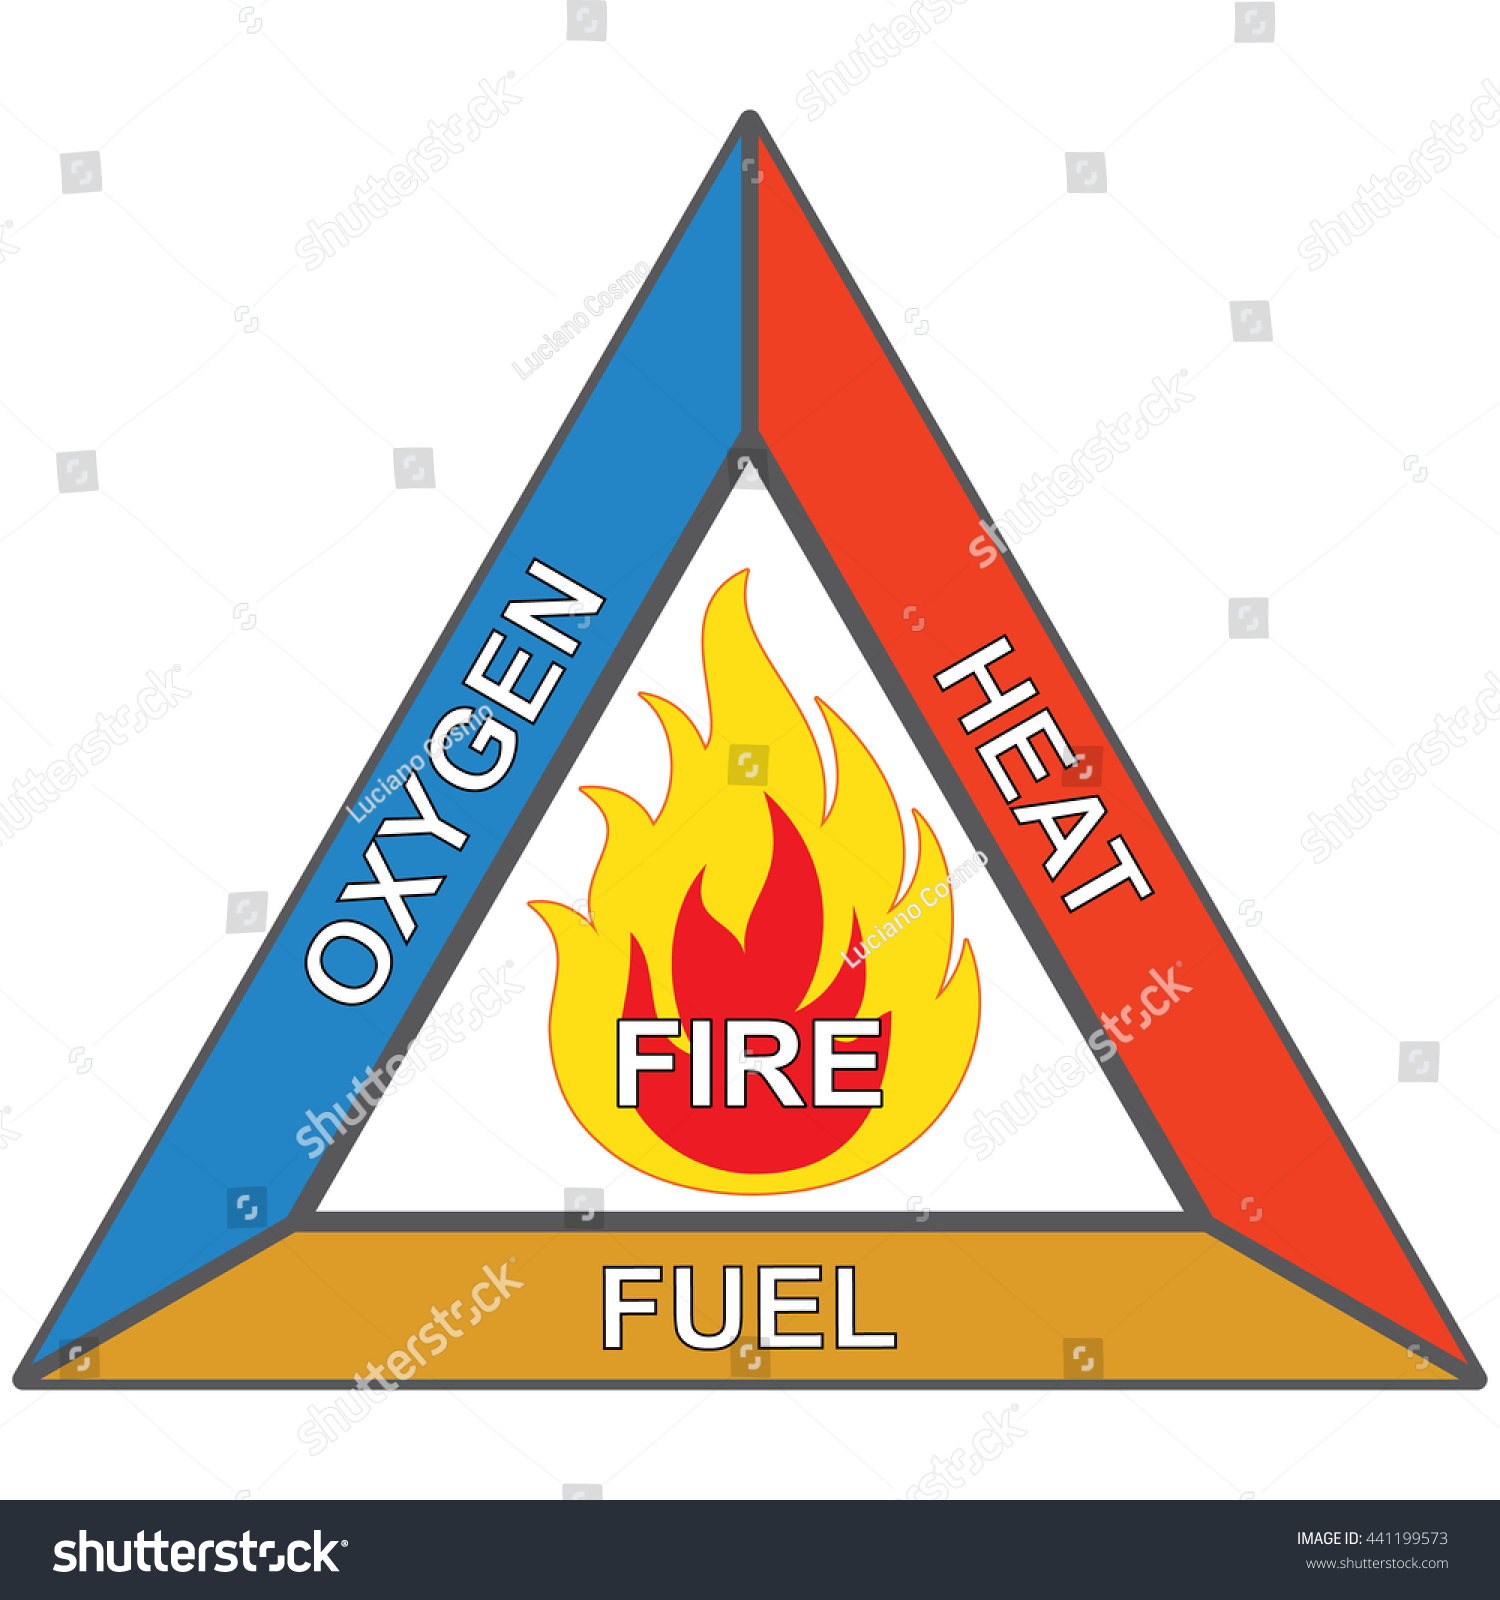 Icons Signaling Flammable Fire Triangle Oxygen Stock